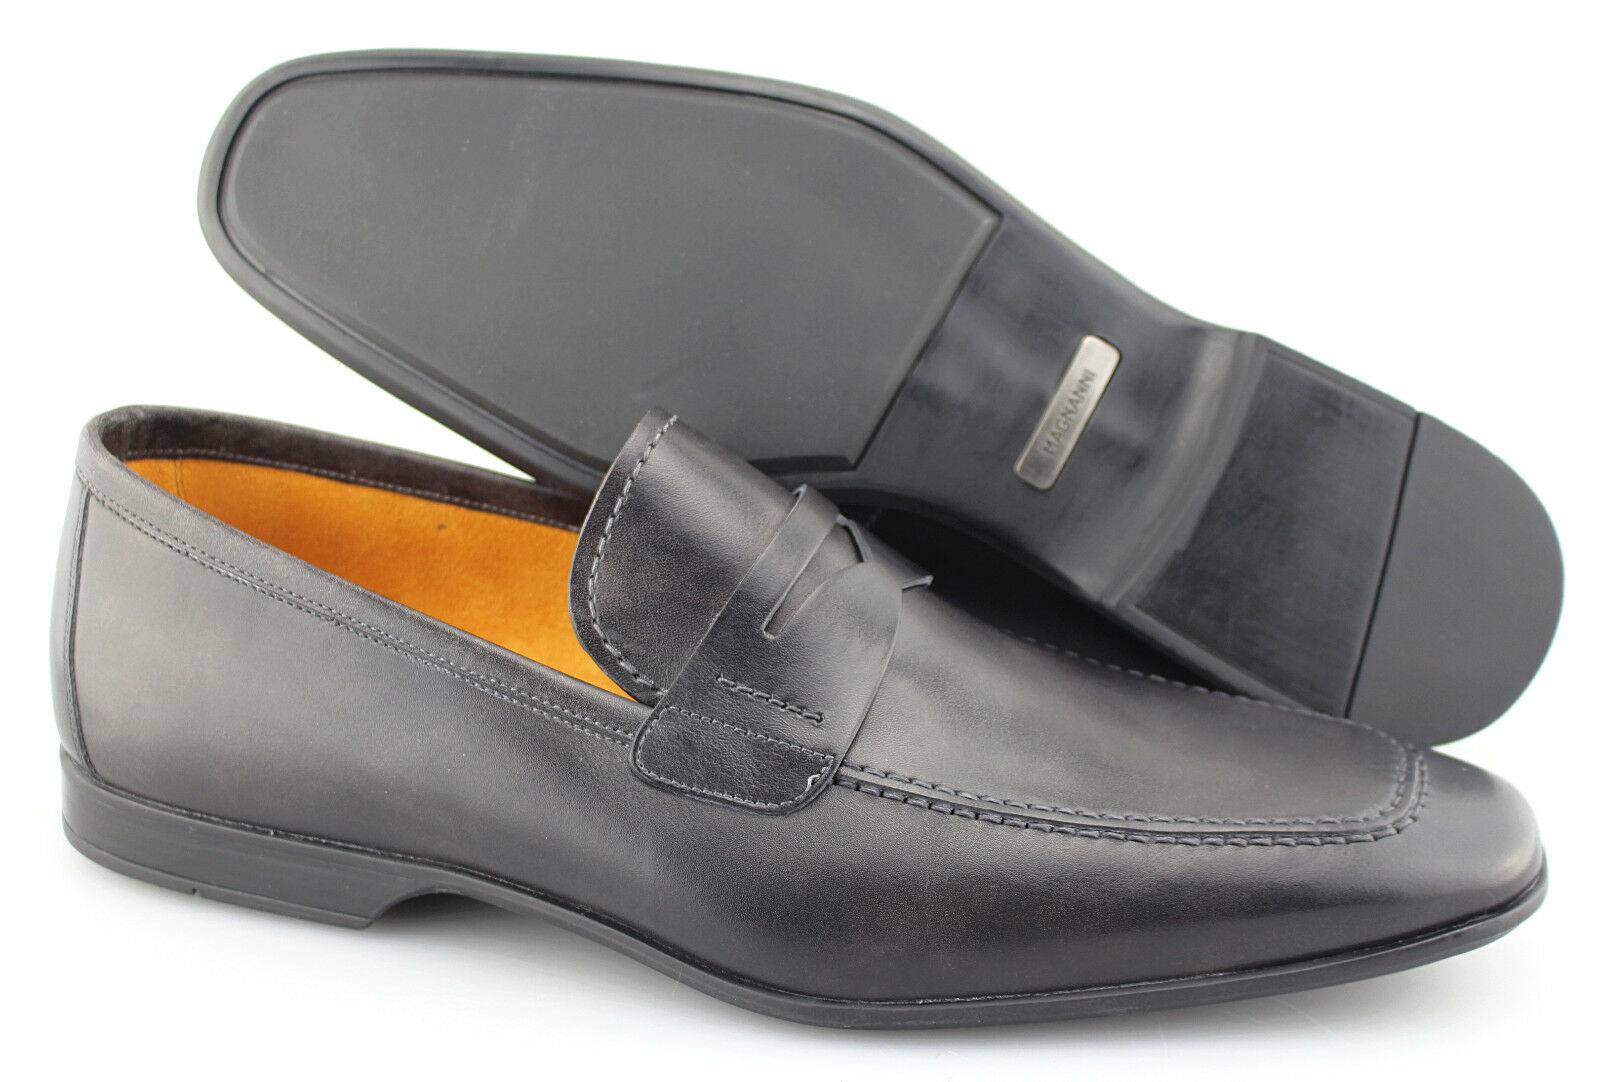 Men's MAGNANNI 'Dylan' Grey Leather Loafers Size US 10 - D